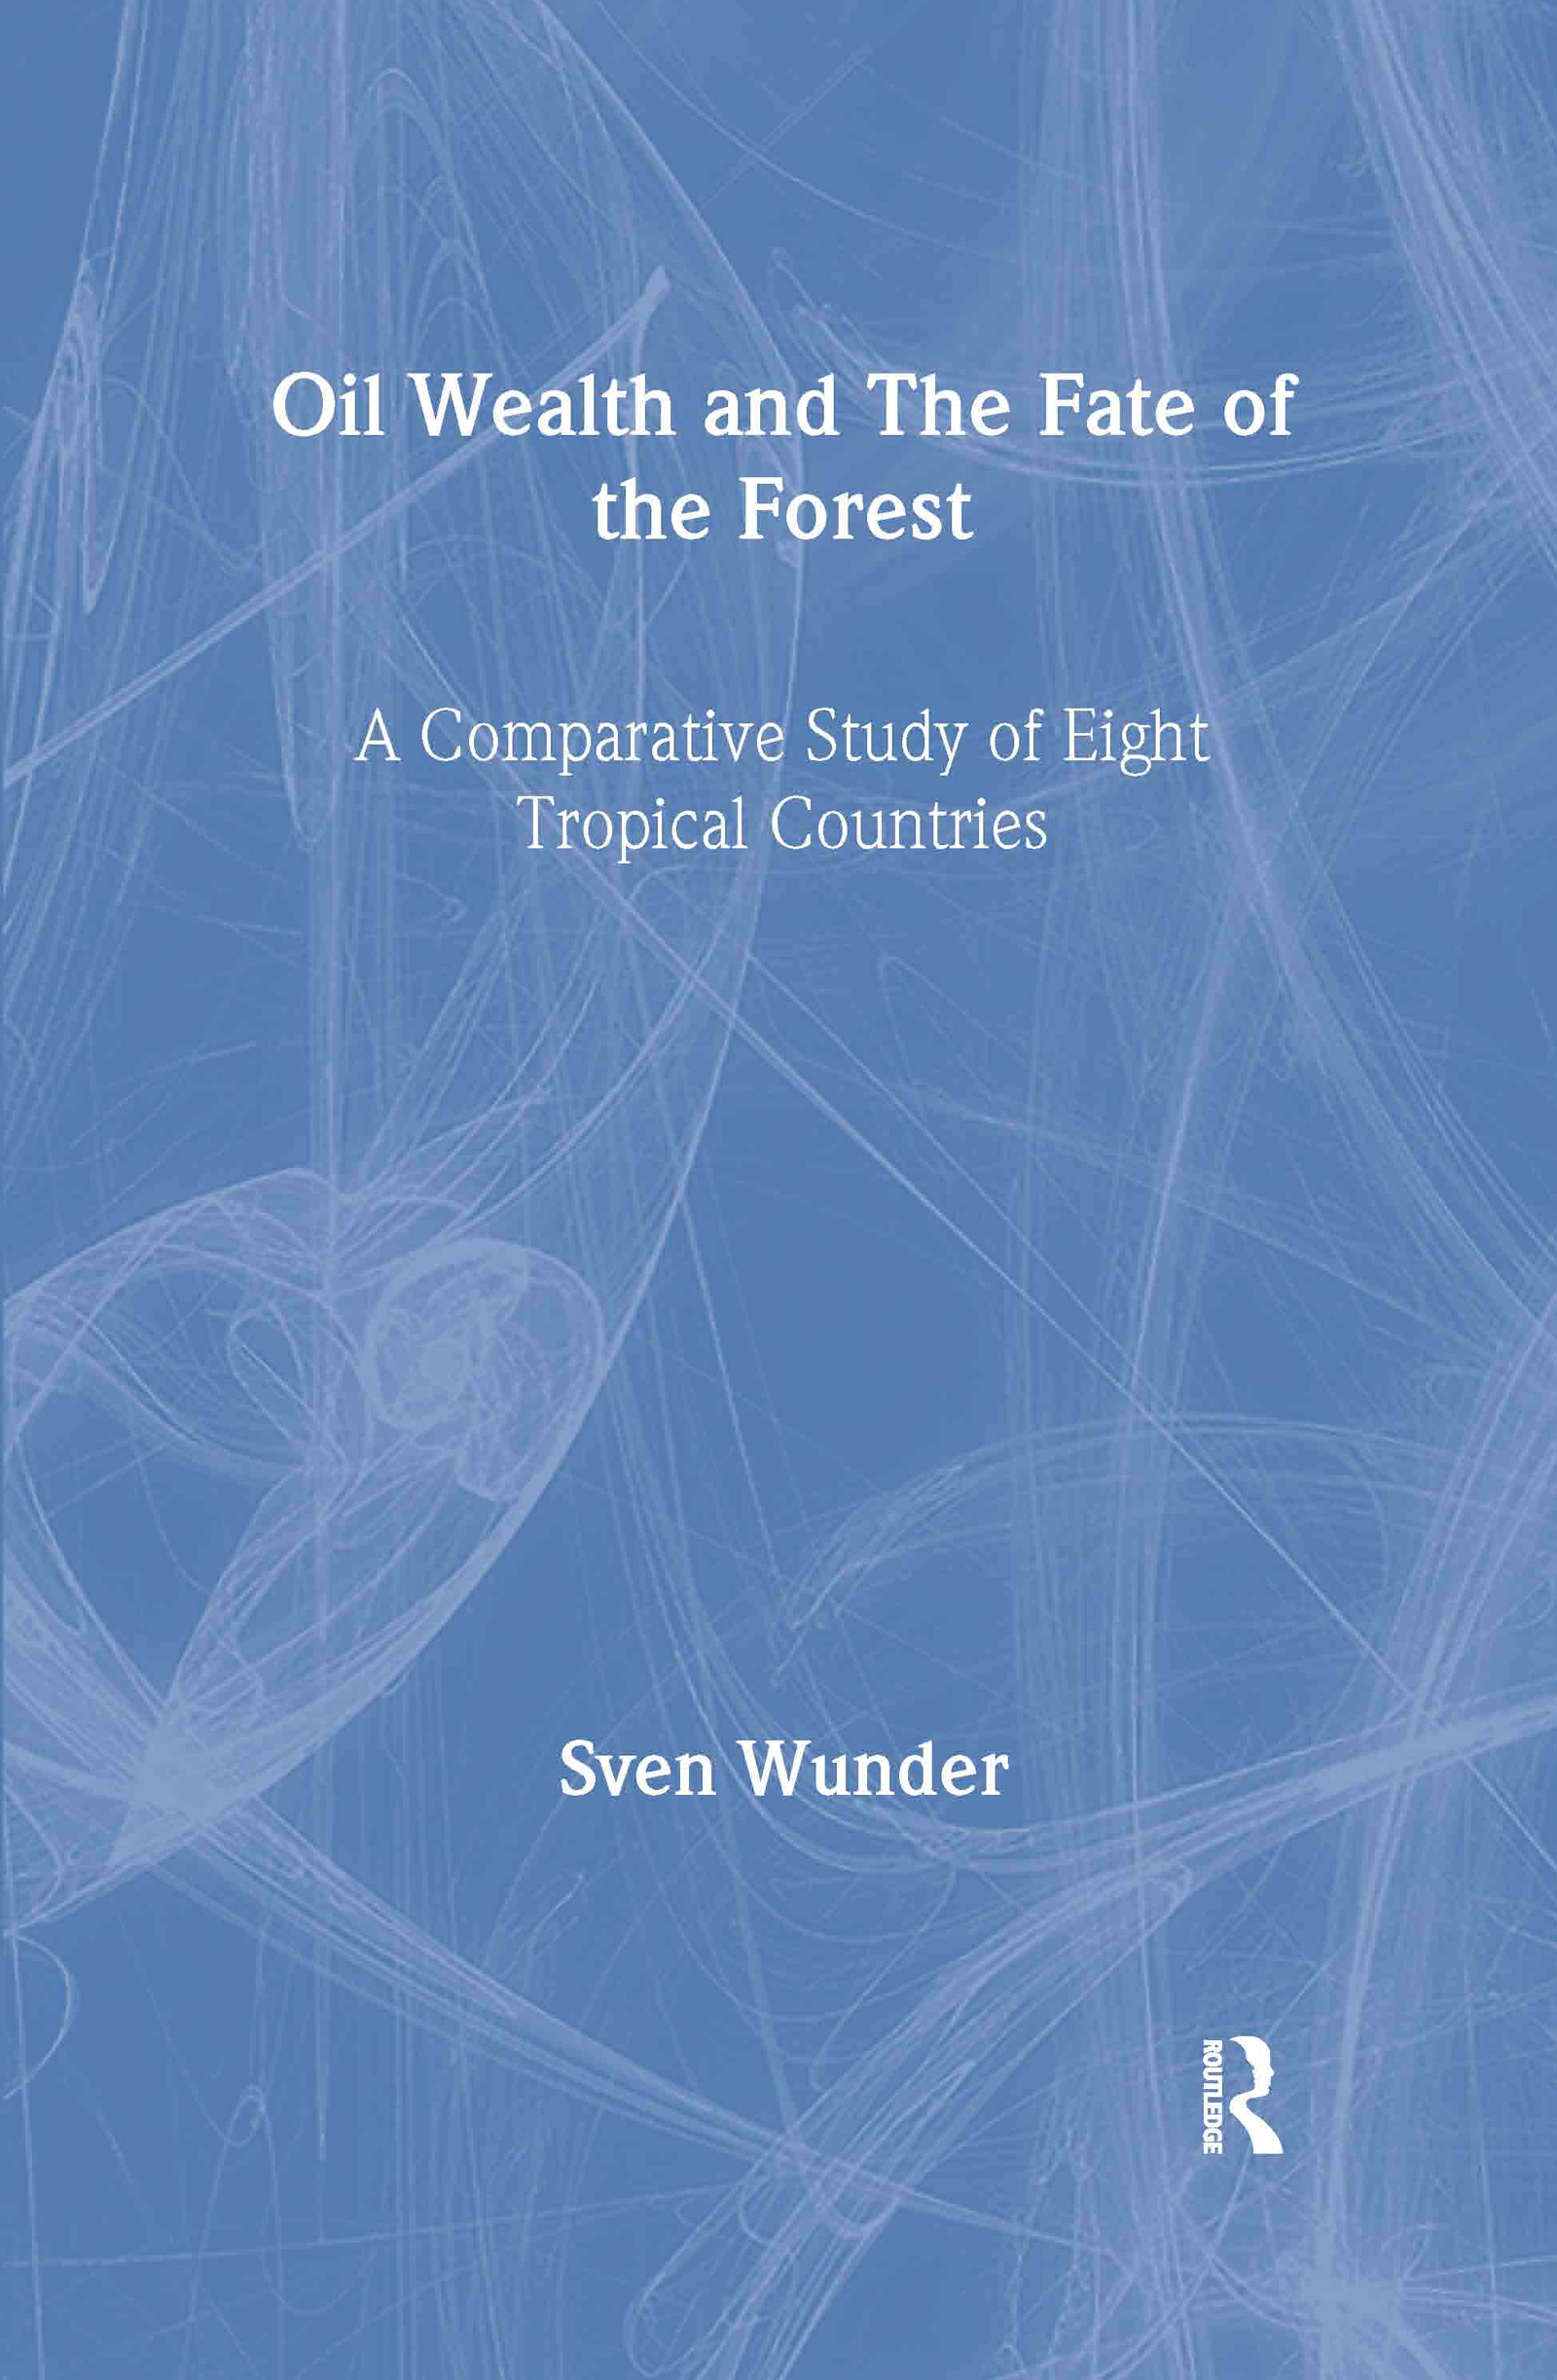 The impact of oil wealth on forests